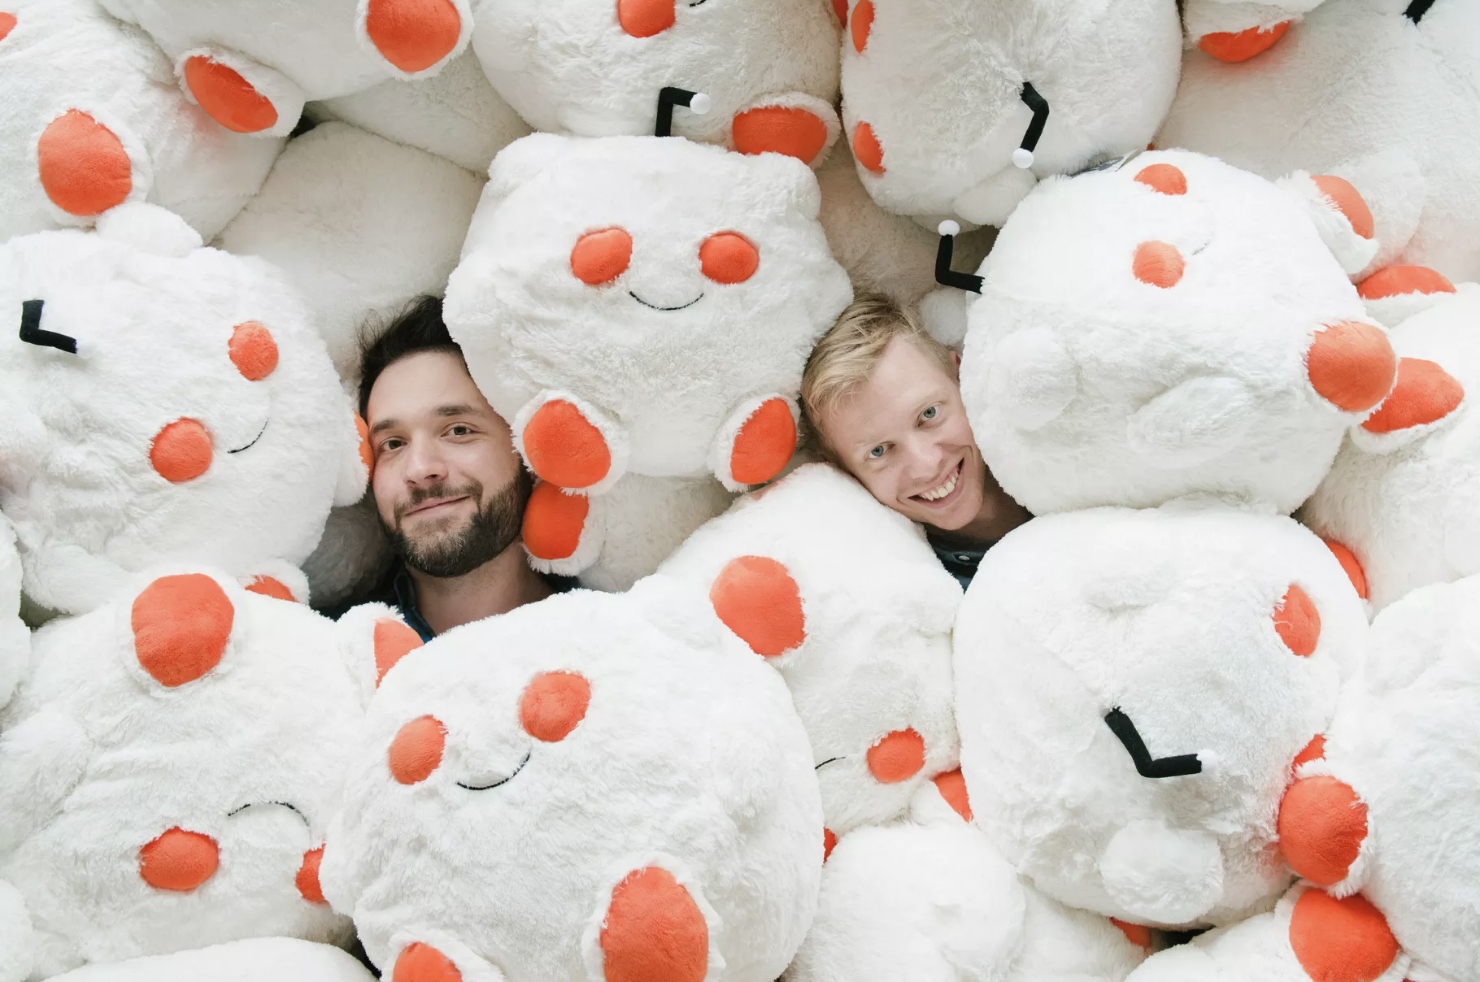 Reddit raised $200 million in funding and is now valued at $1.8 billion